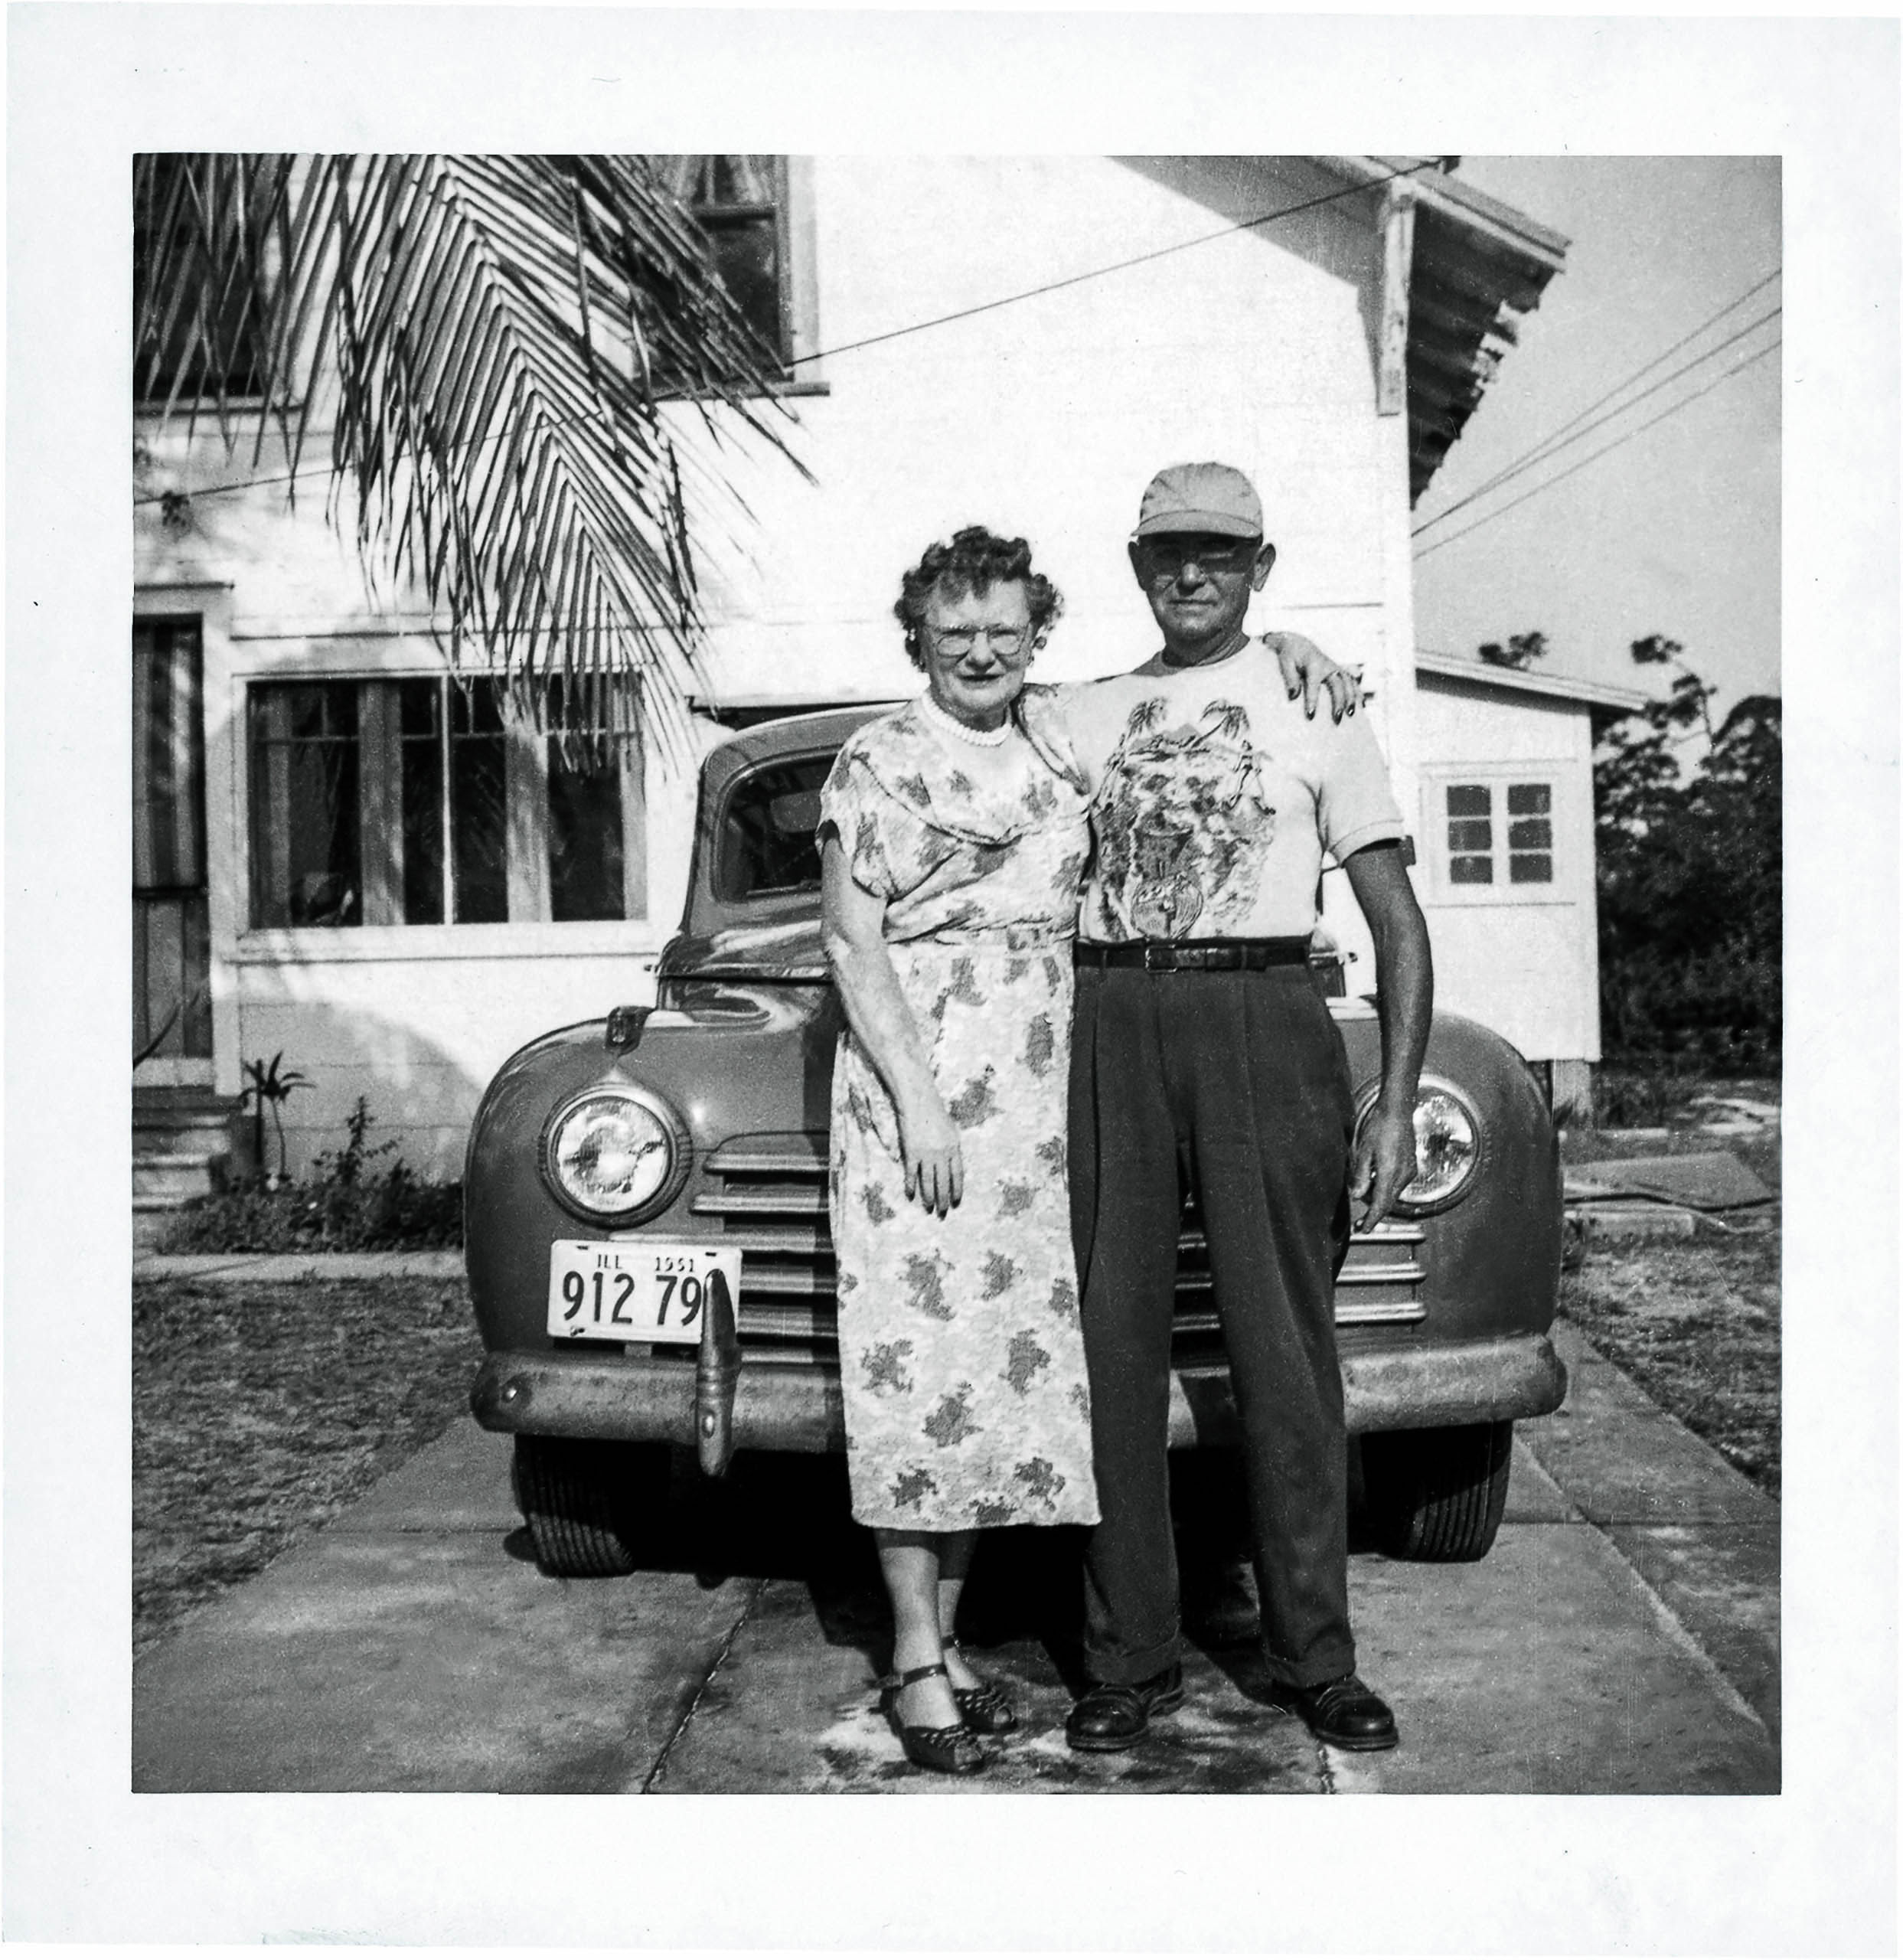 Anonymous snapshot from the book American Dream, curated by Sylvie Meunier and Patrick Tournebœuf.